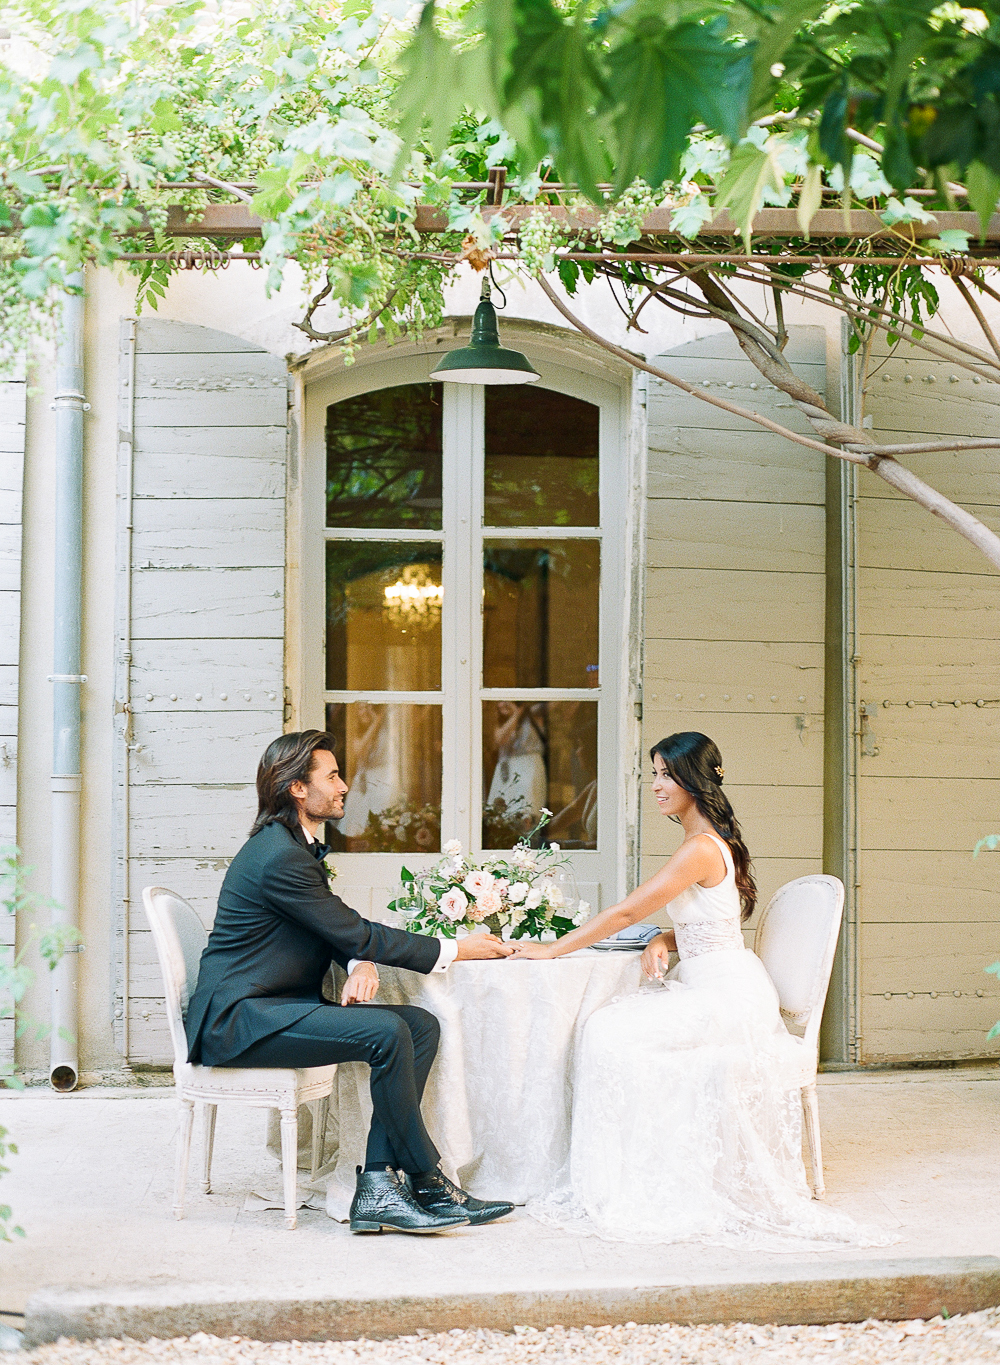 Organic Luxe Elopement Inspiration Alicia Yarrish Photography26